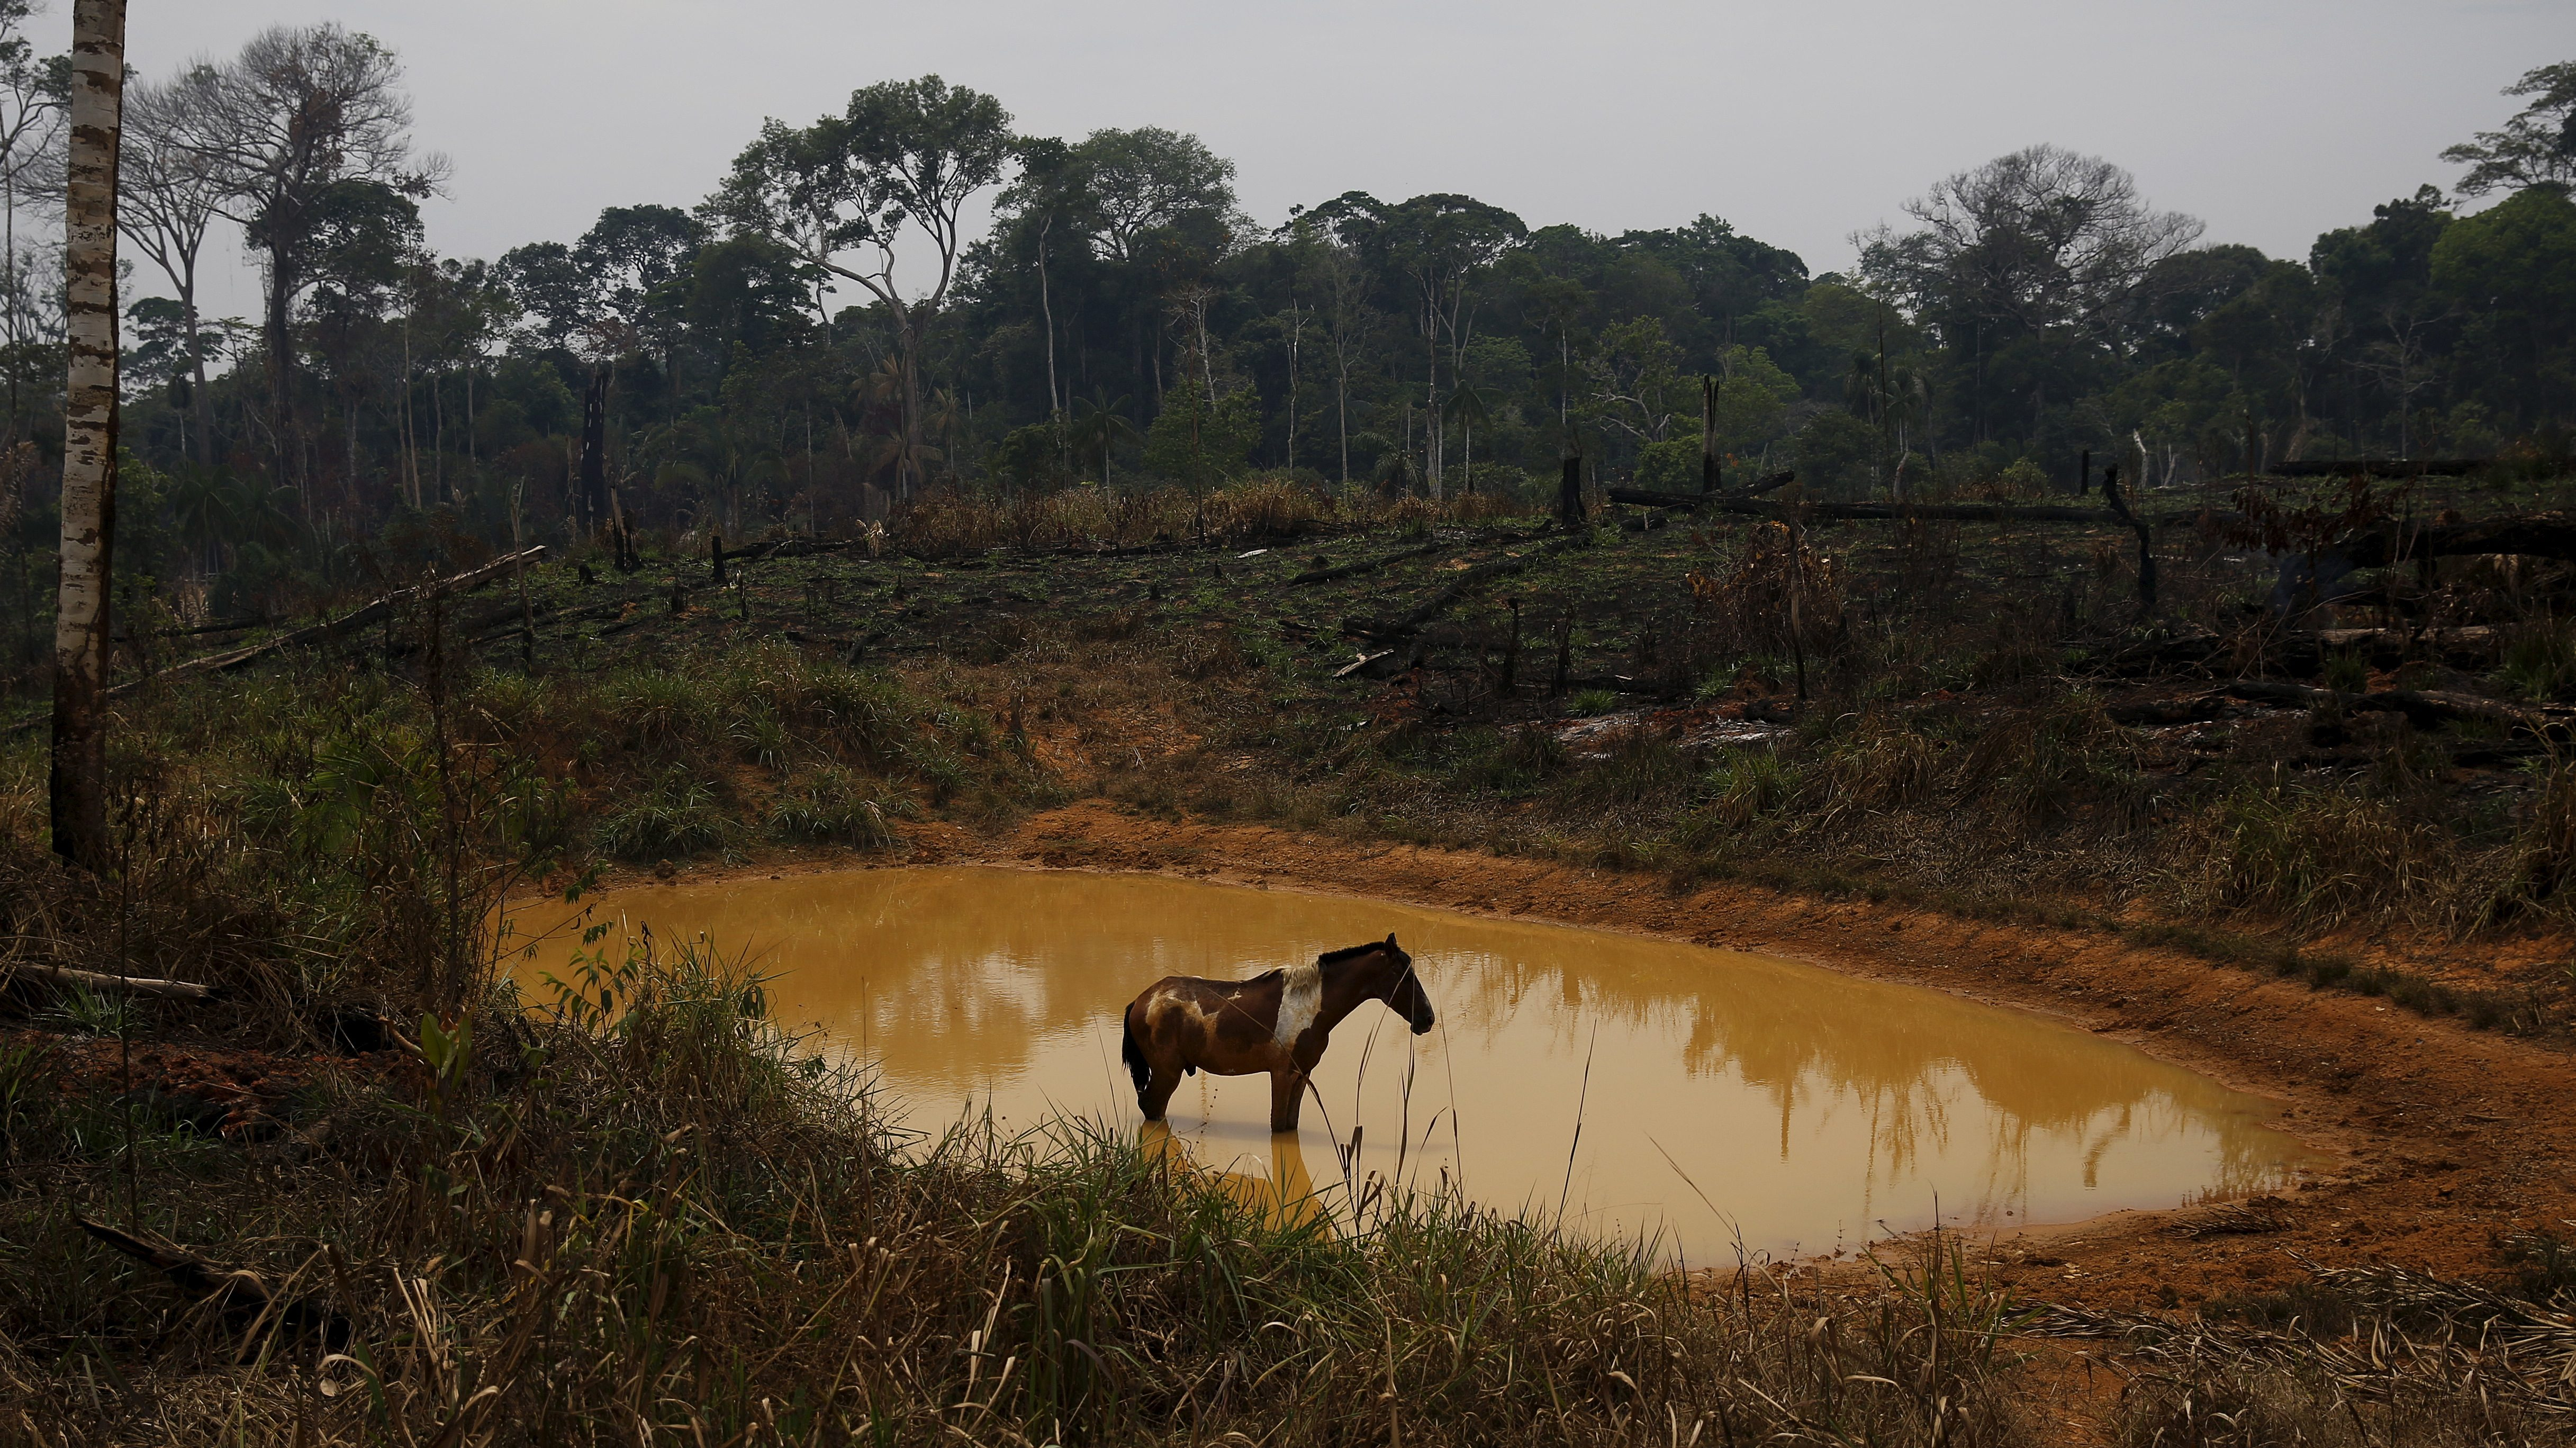 A horse stands by a lake in the Brazilian rainforest.